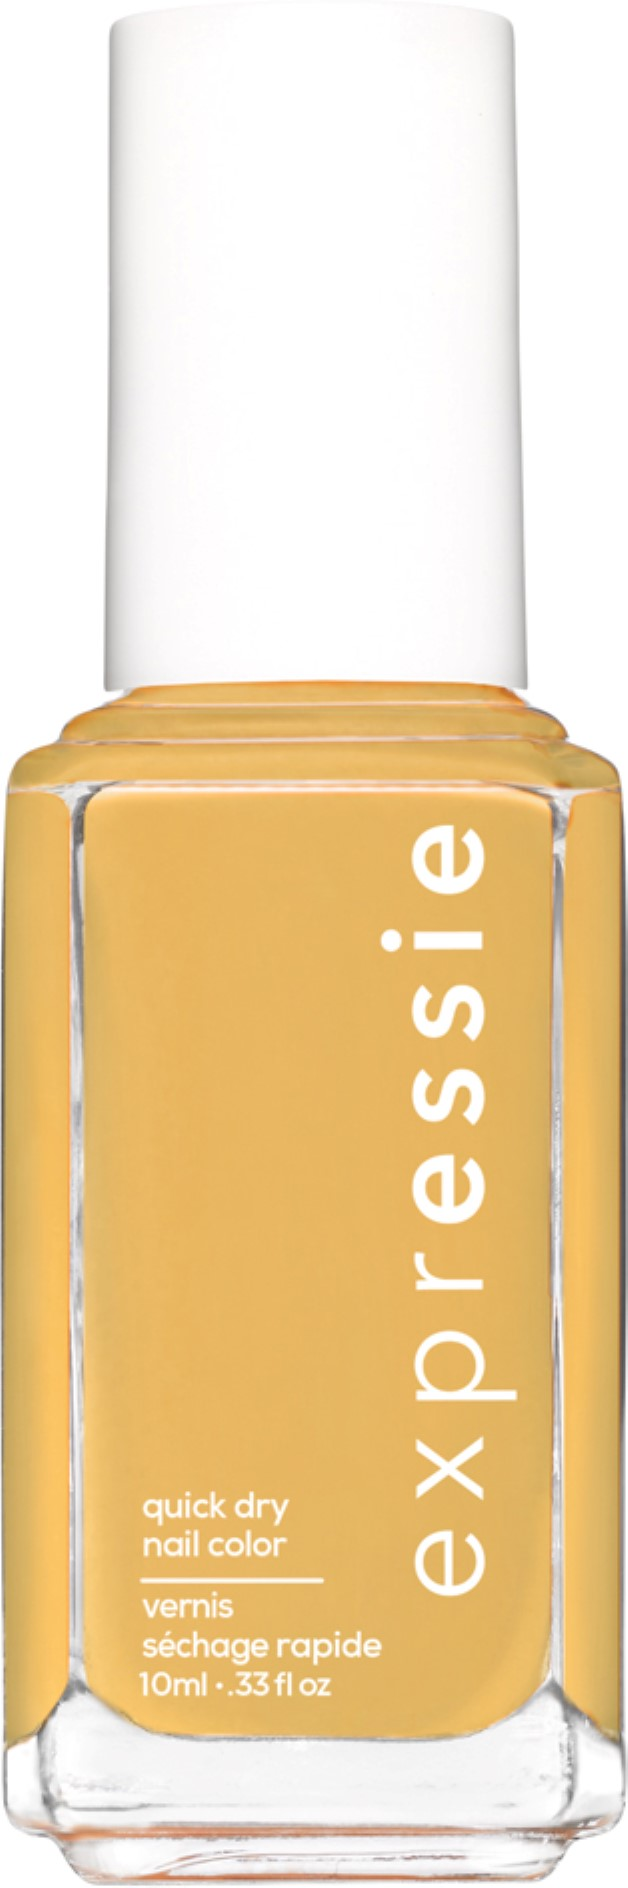 expressie quick-dry nail polish, yellow nail polish, don't hate, curate, 0.33 oz